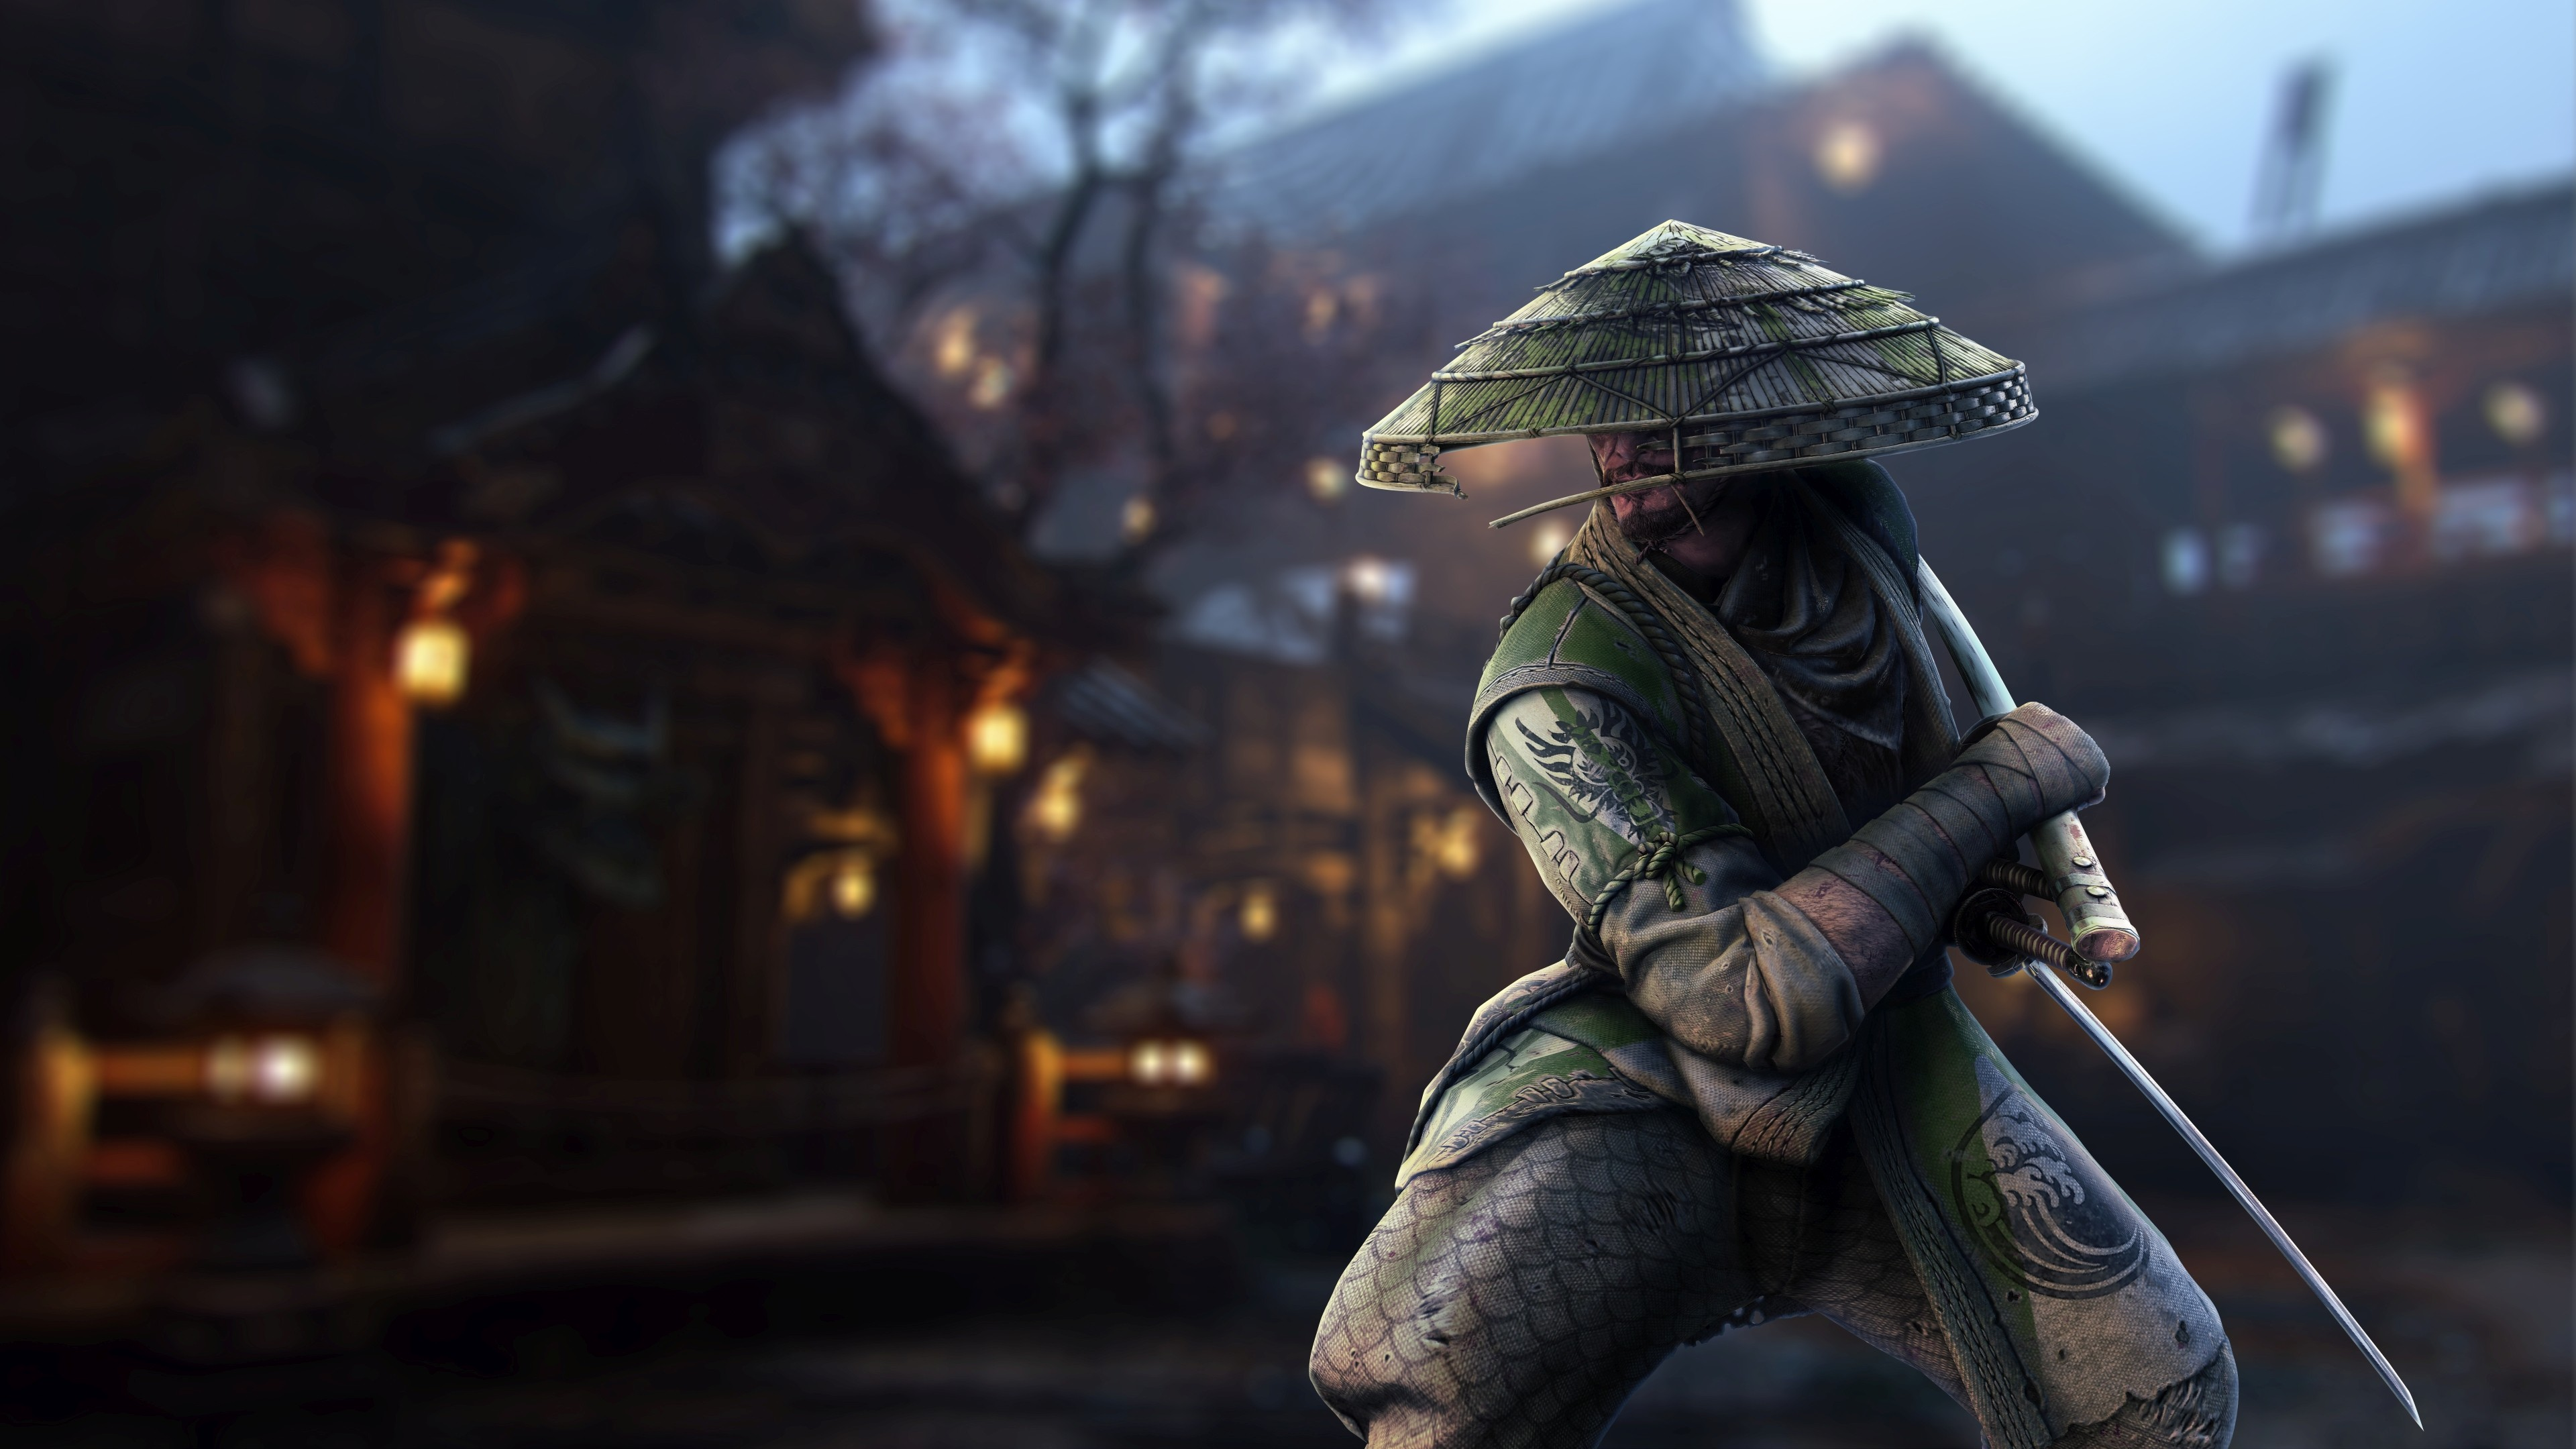 Wallpaper For Honor Season IV, Screenshot, 4k, Games #16488